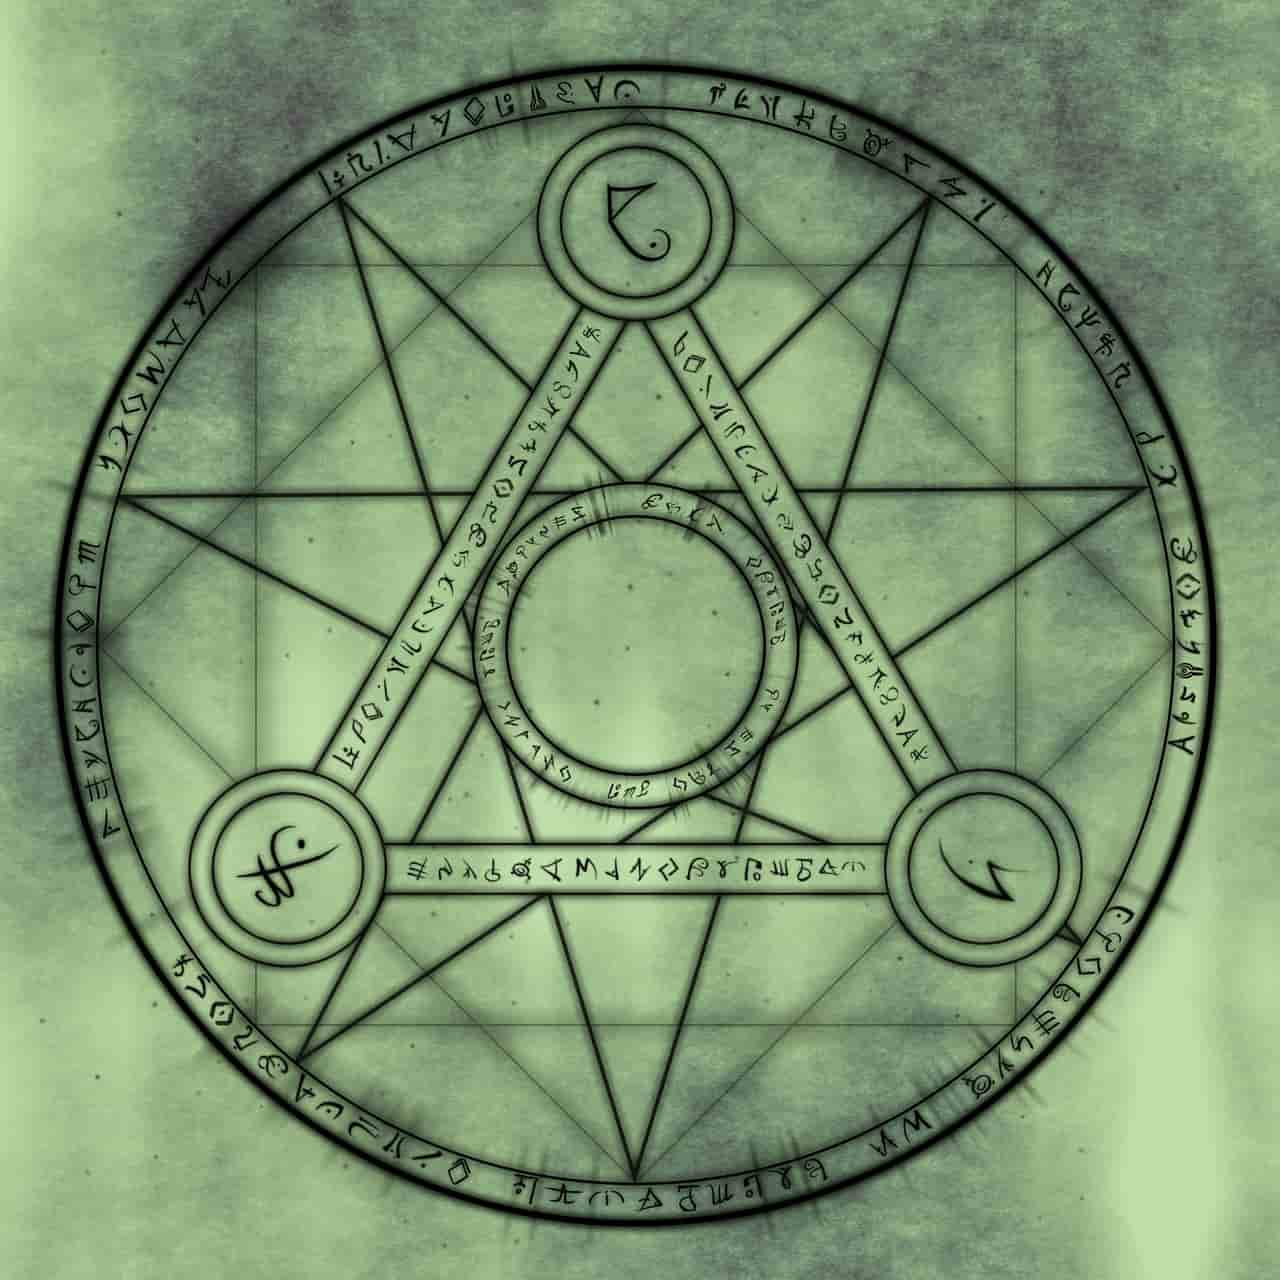 Image of a symbol that represents distillation stage in spiritual alchemy